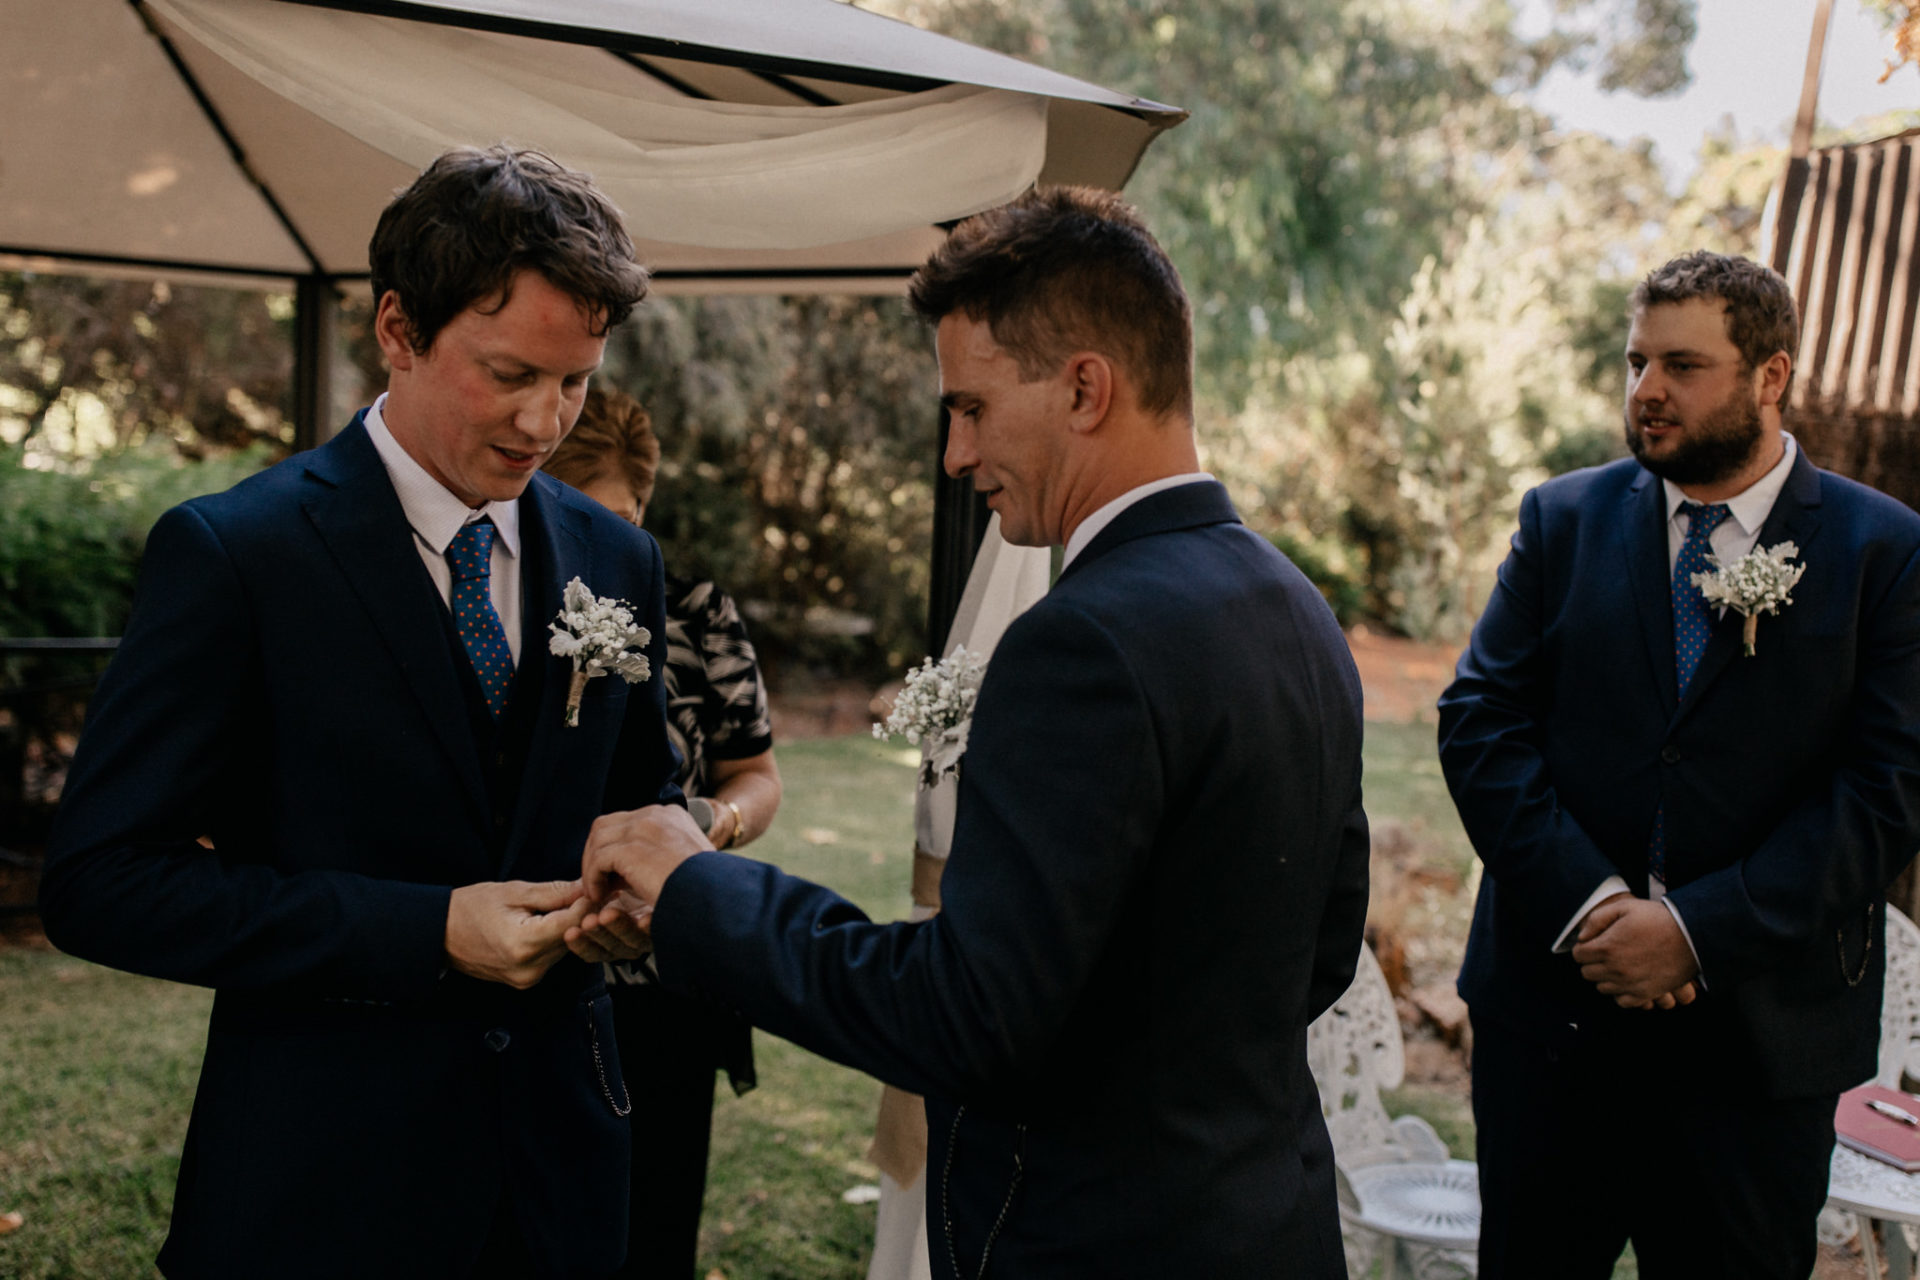 backyard-wedding-australia-melbourne-ceremony-best-man-ring-exchange